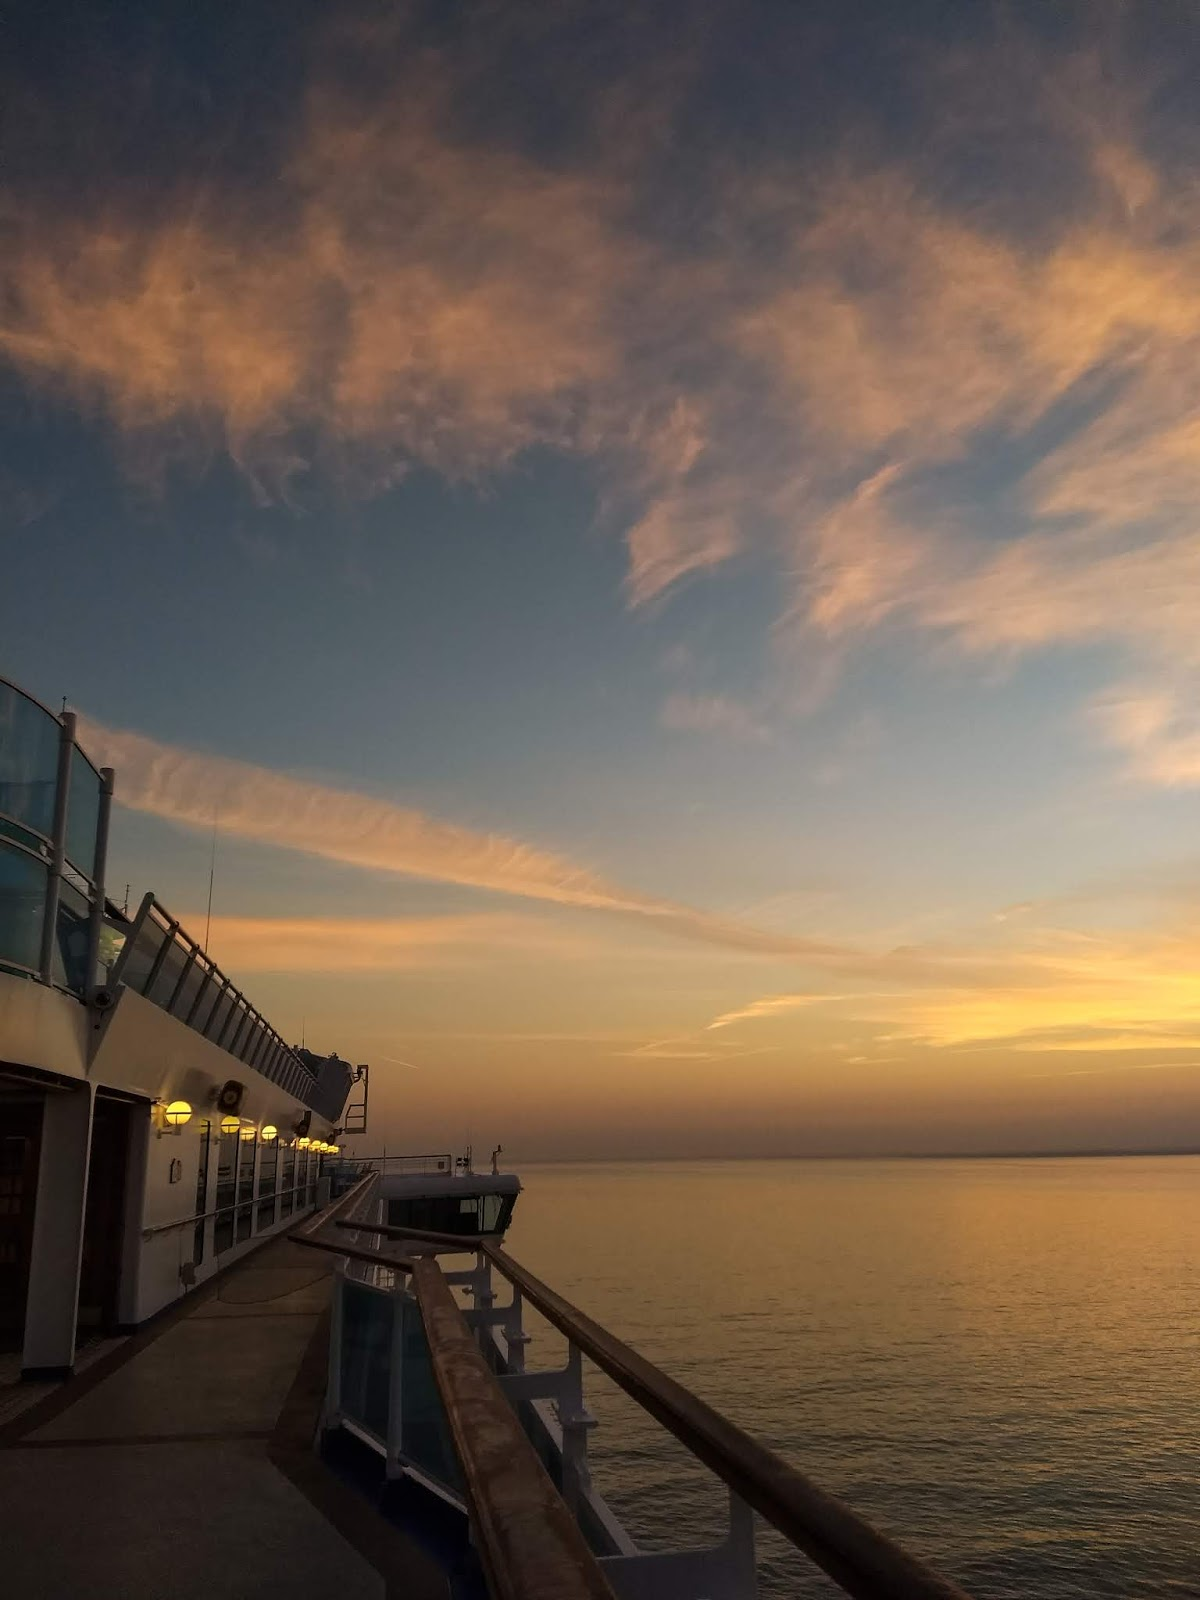 Sunrise clouds captured from a cruise ship docked in Lisbon.